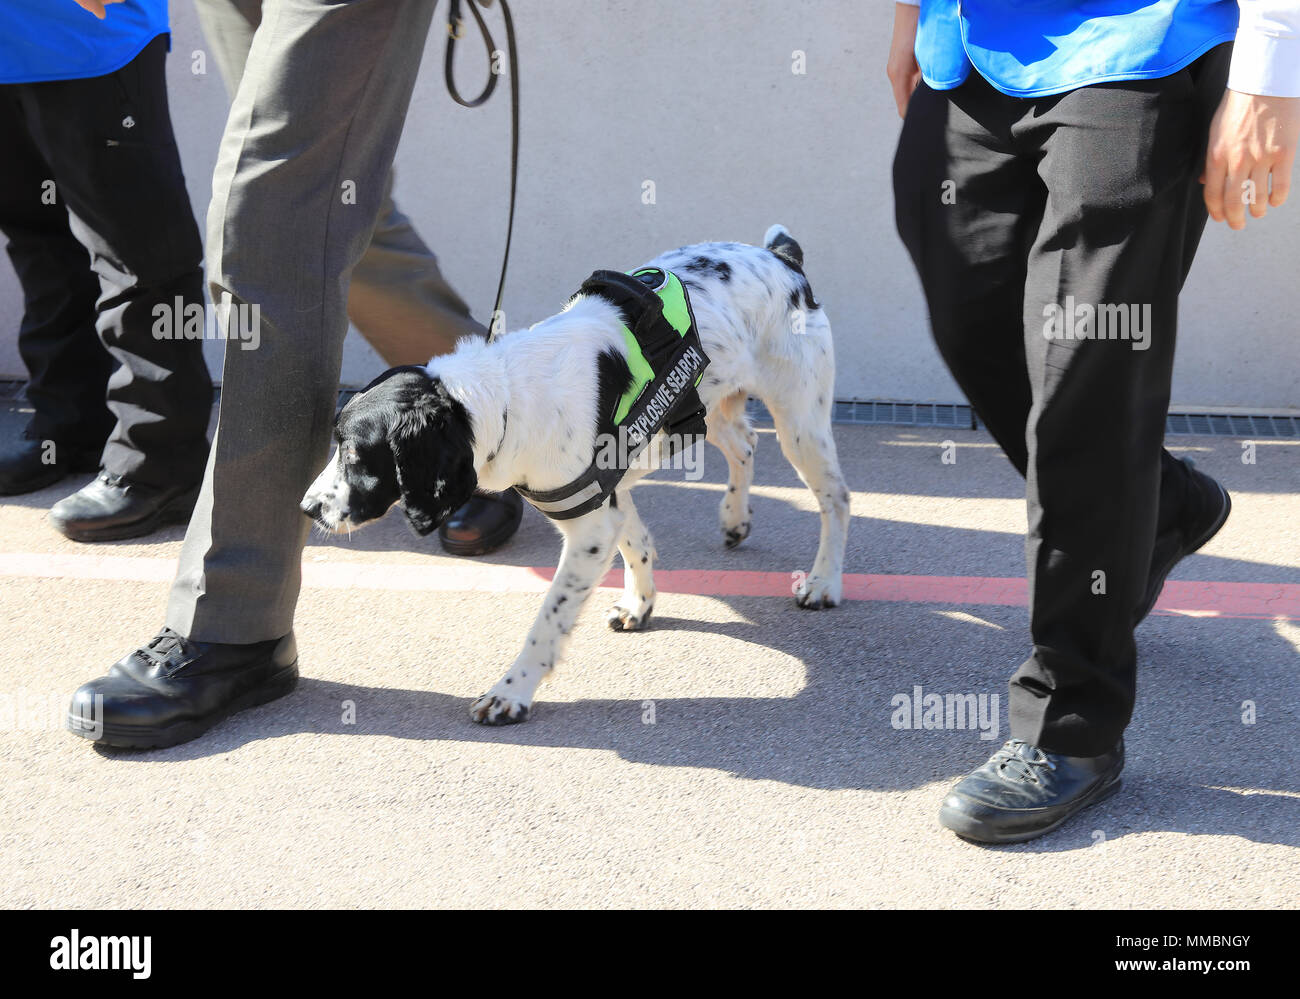 Explosive sniffer dog, with it's handler at Wembley Stadium, in NW London, UK - Stock Image